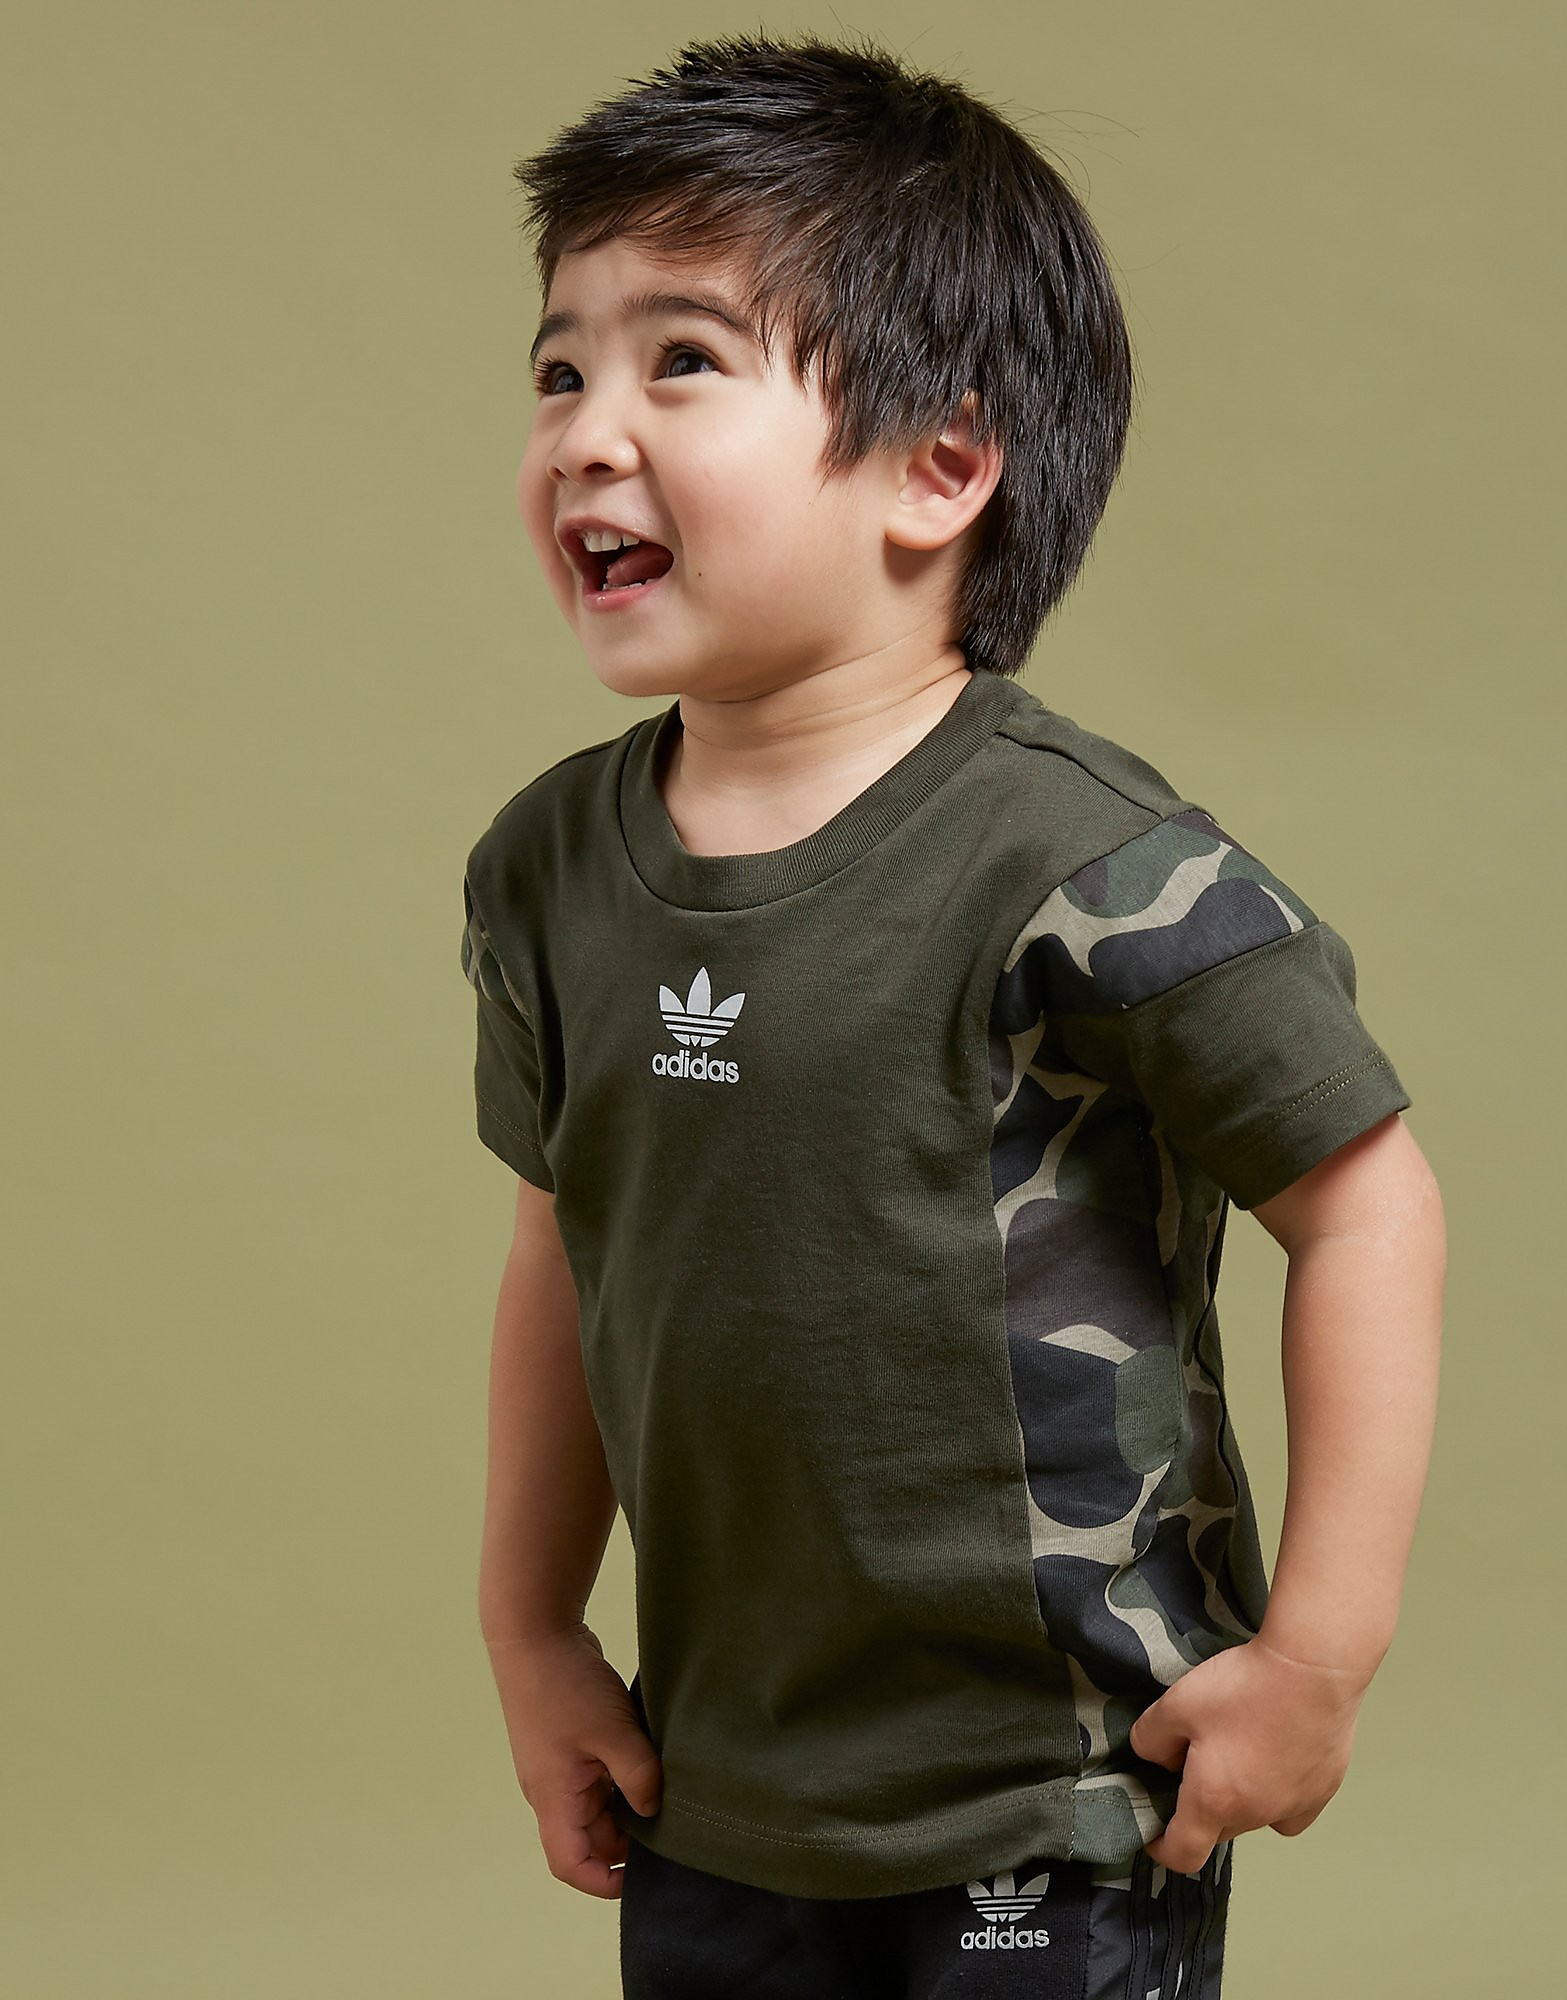 adidas Originals camiseta Europe infantil